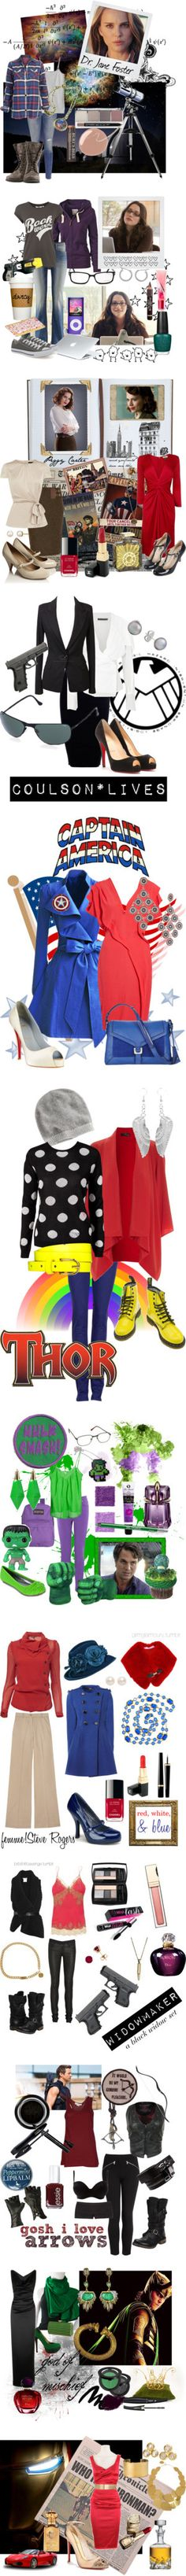 """""""Get Dressed, Avengers"""" by eiluned ❤ liked on Polyvore"""